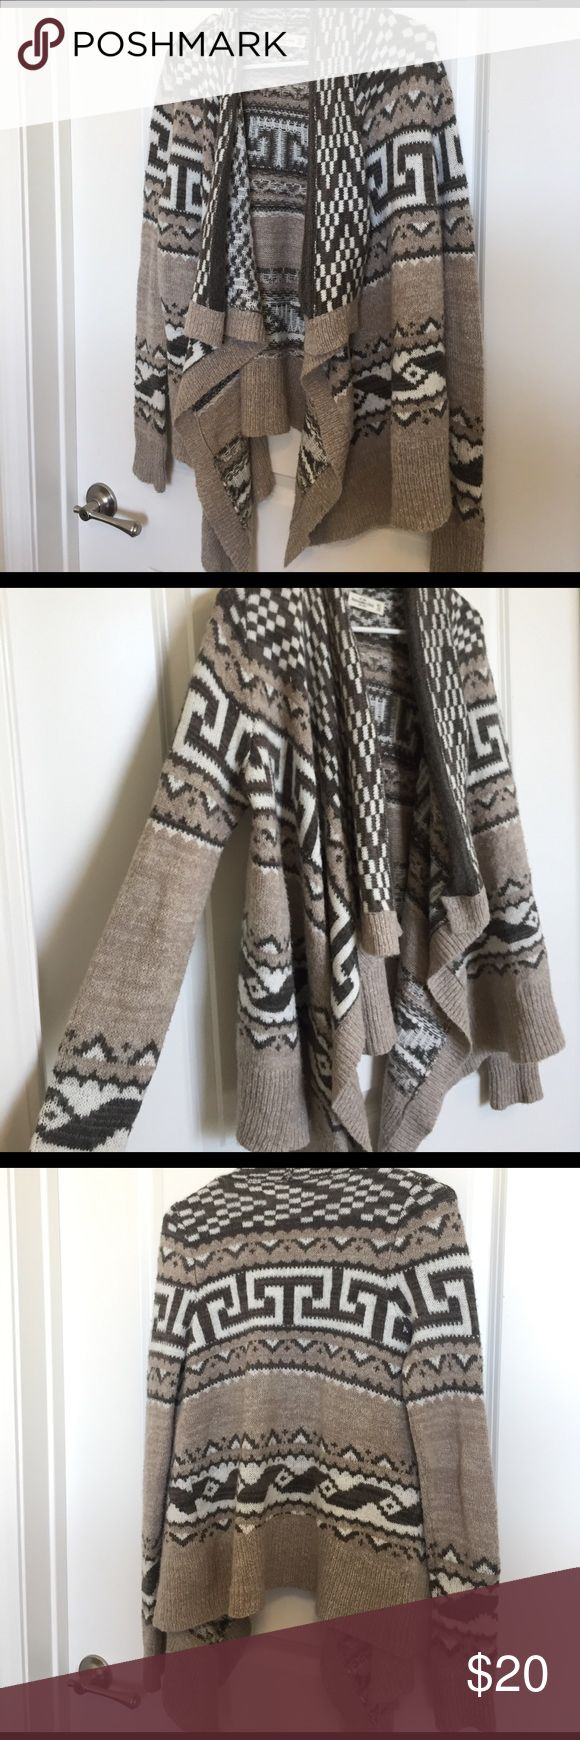 Waterfall A&F tribal print cardigan Cozy sweater, perfect for fall/winter Abercrombie & Fitch Sweaters Shrugs & Ponchos